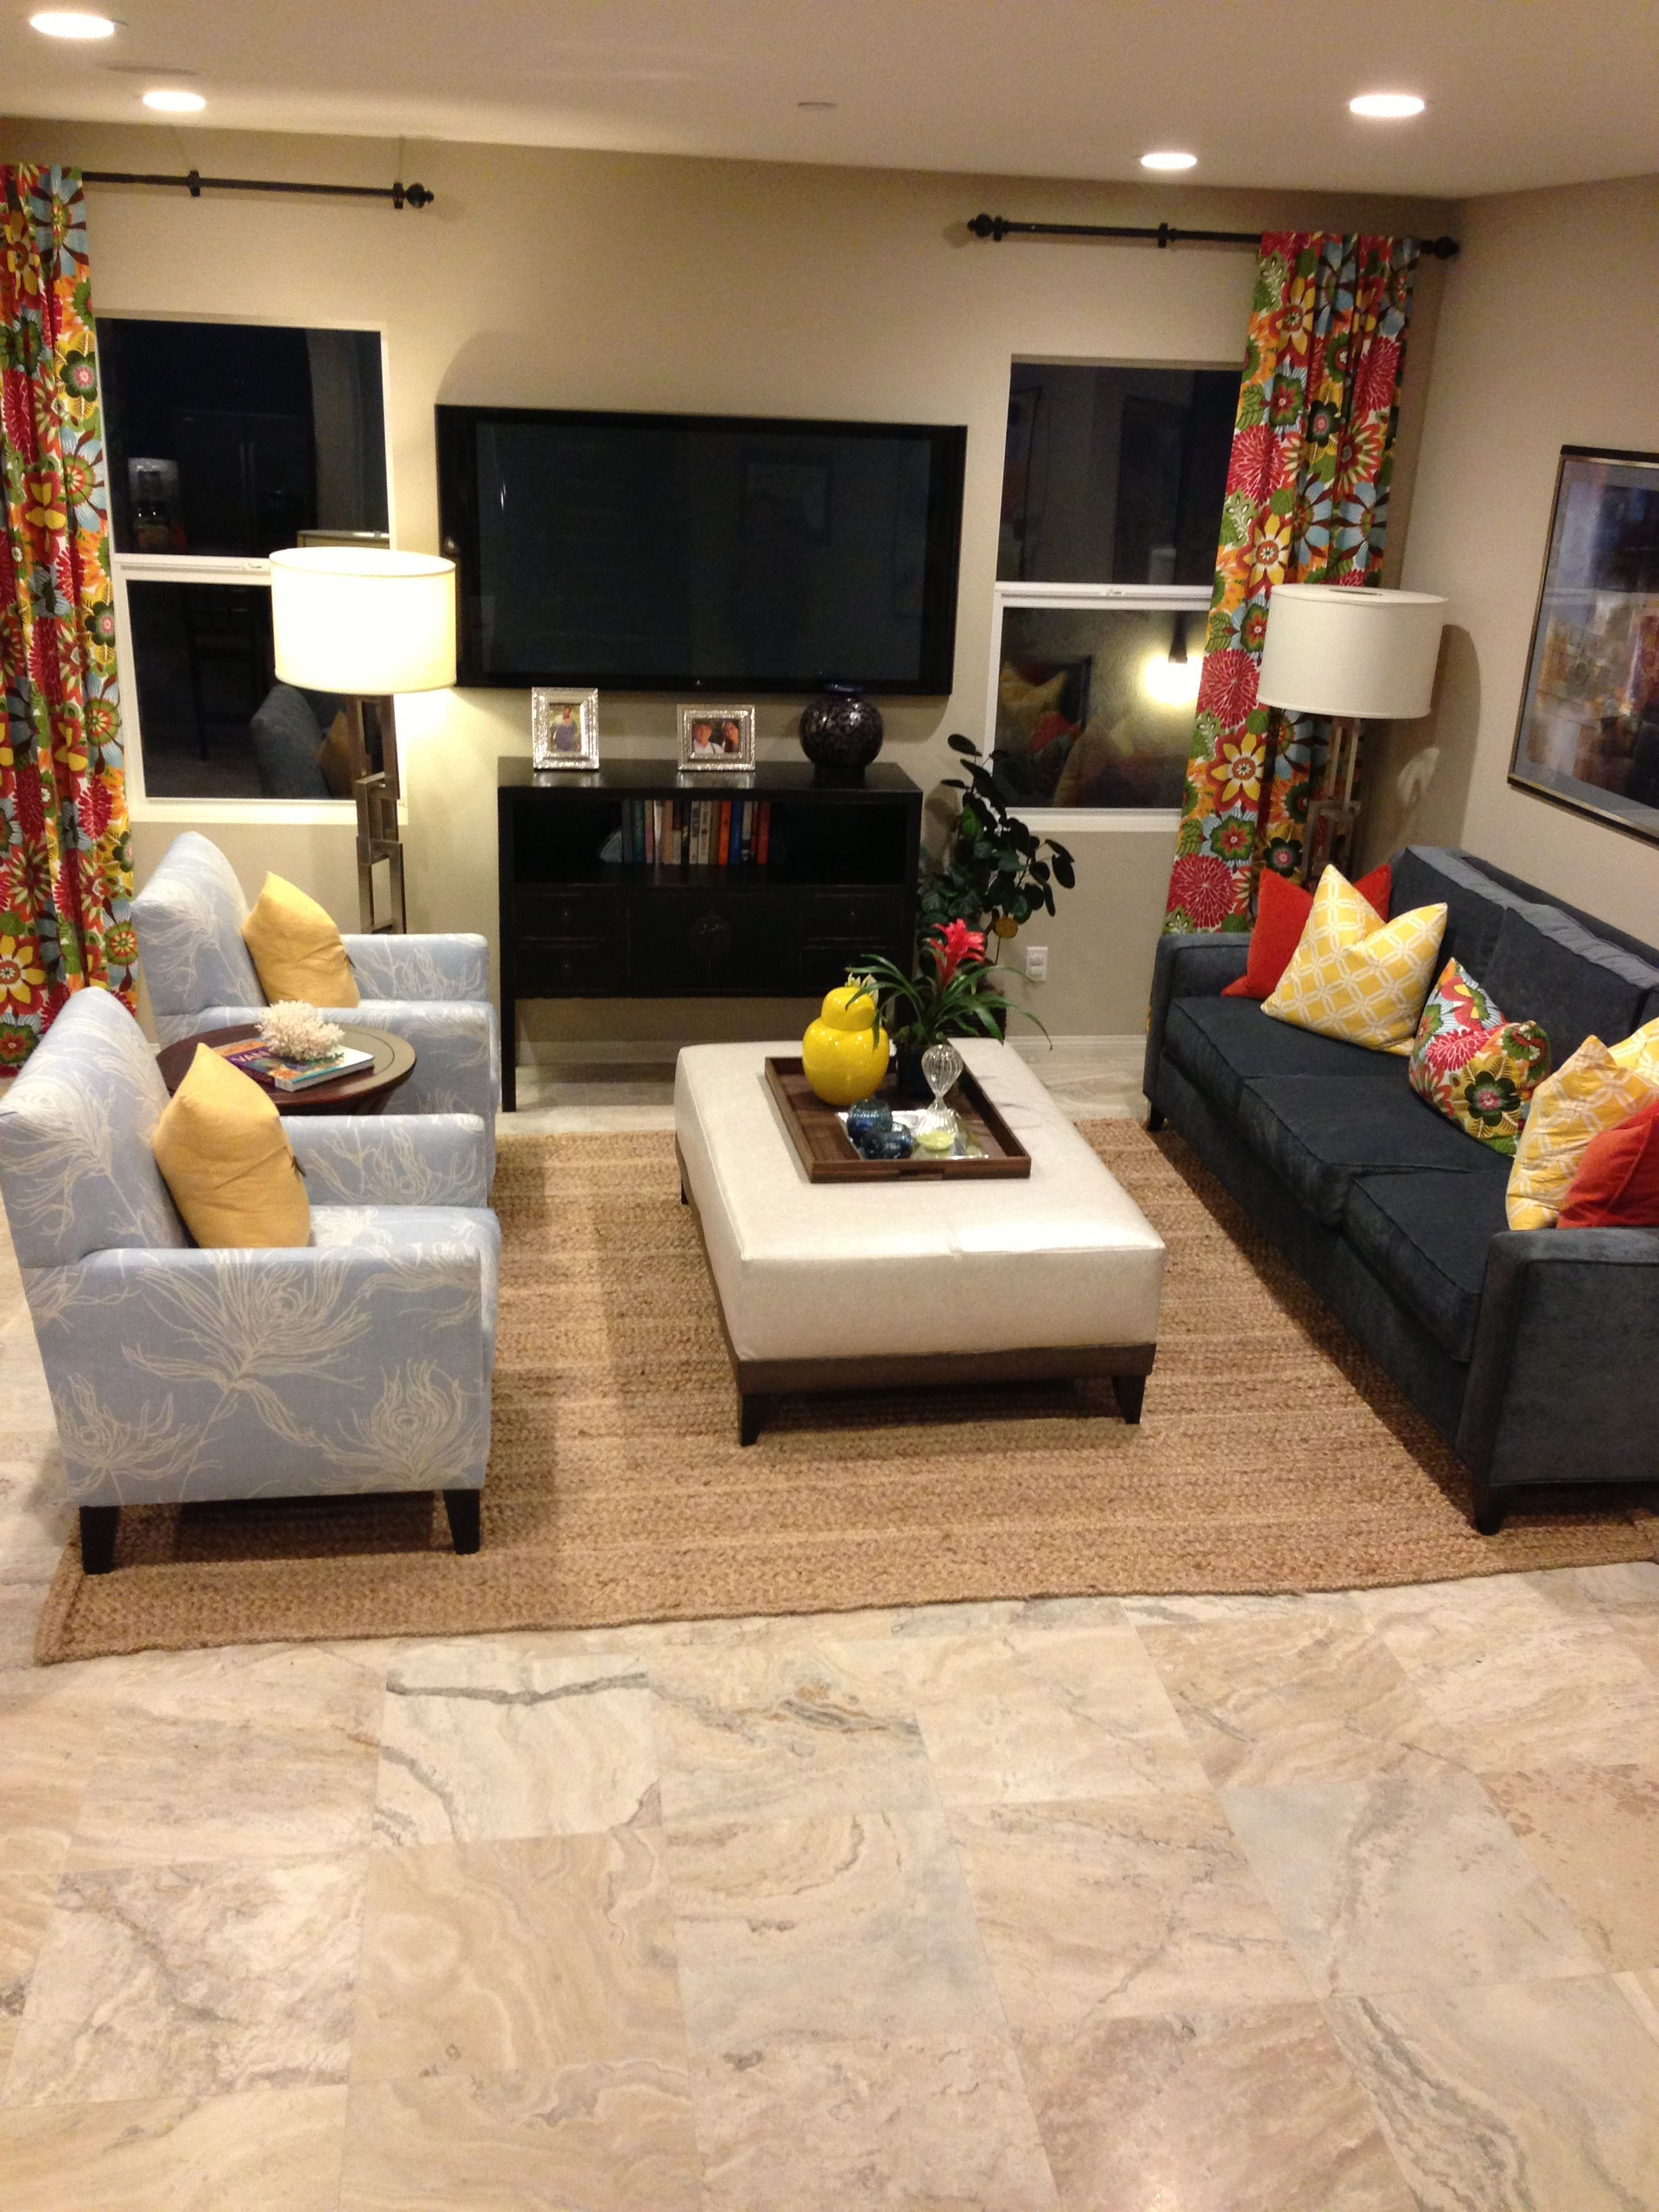 How To Feng Shui Your Home Bedroom And Bathroom Livingroom Layout Patterned Chair Living Room Living Room Furniture Layout